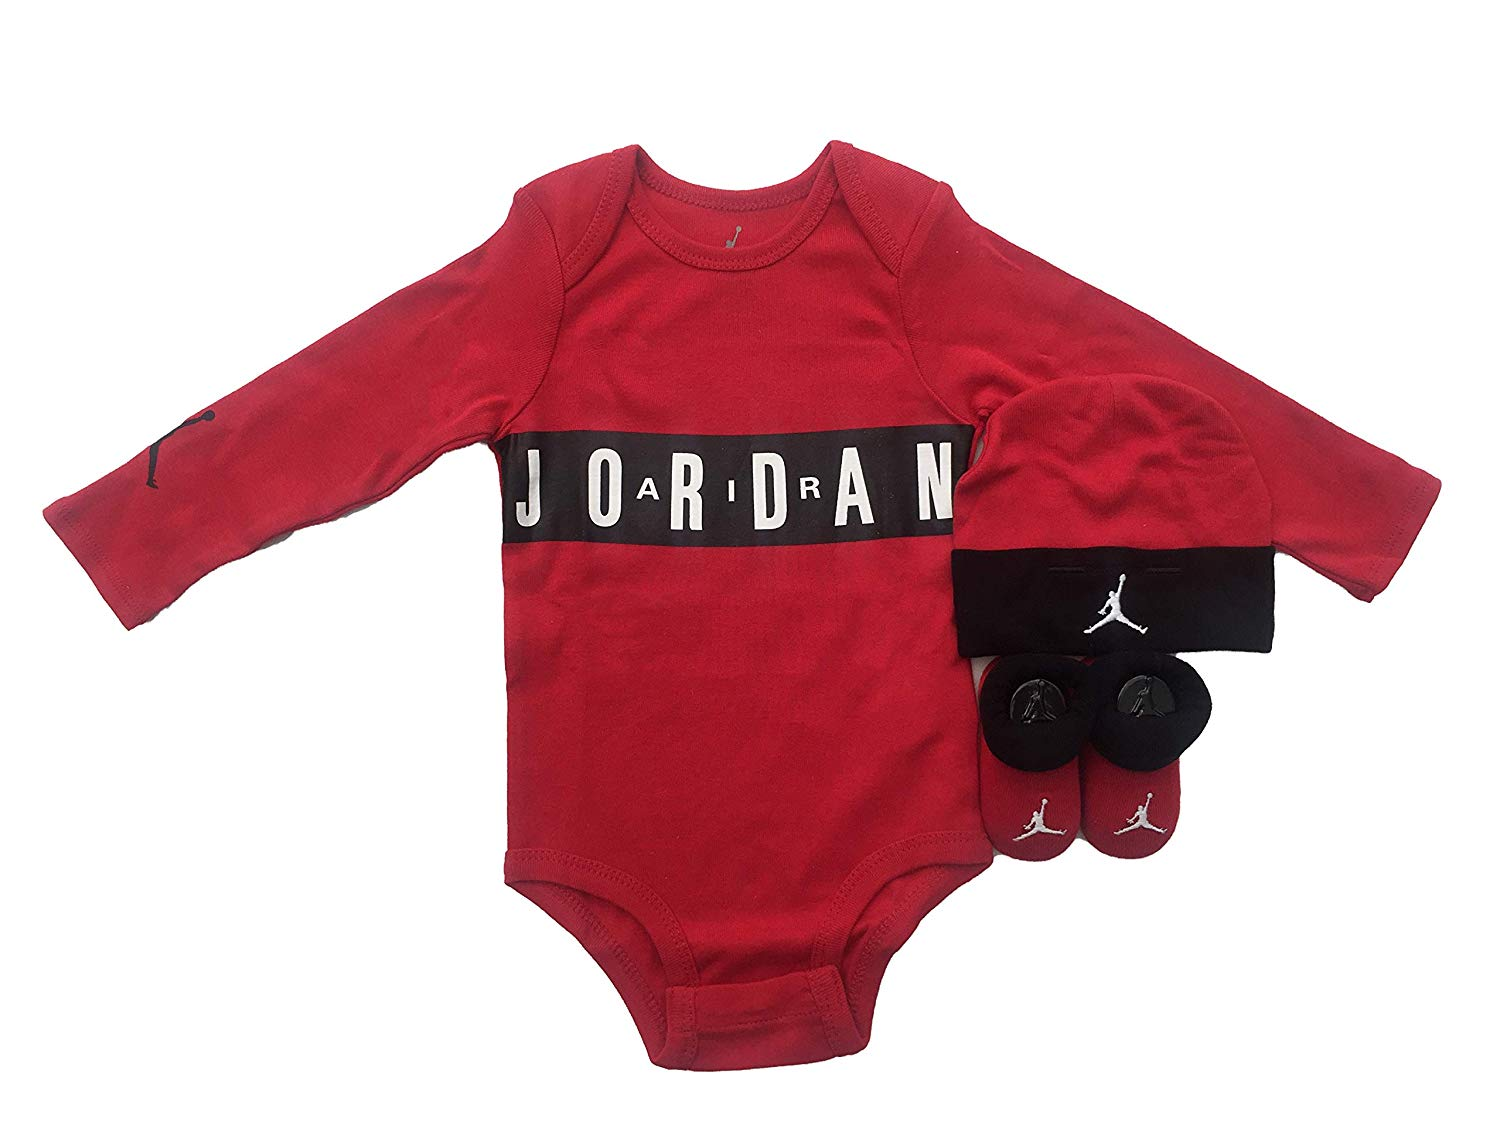 ca91e67aaed481 Get Quotations · Jordan Baby 3-Piece Set